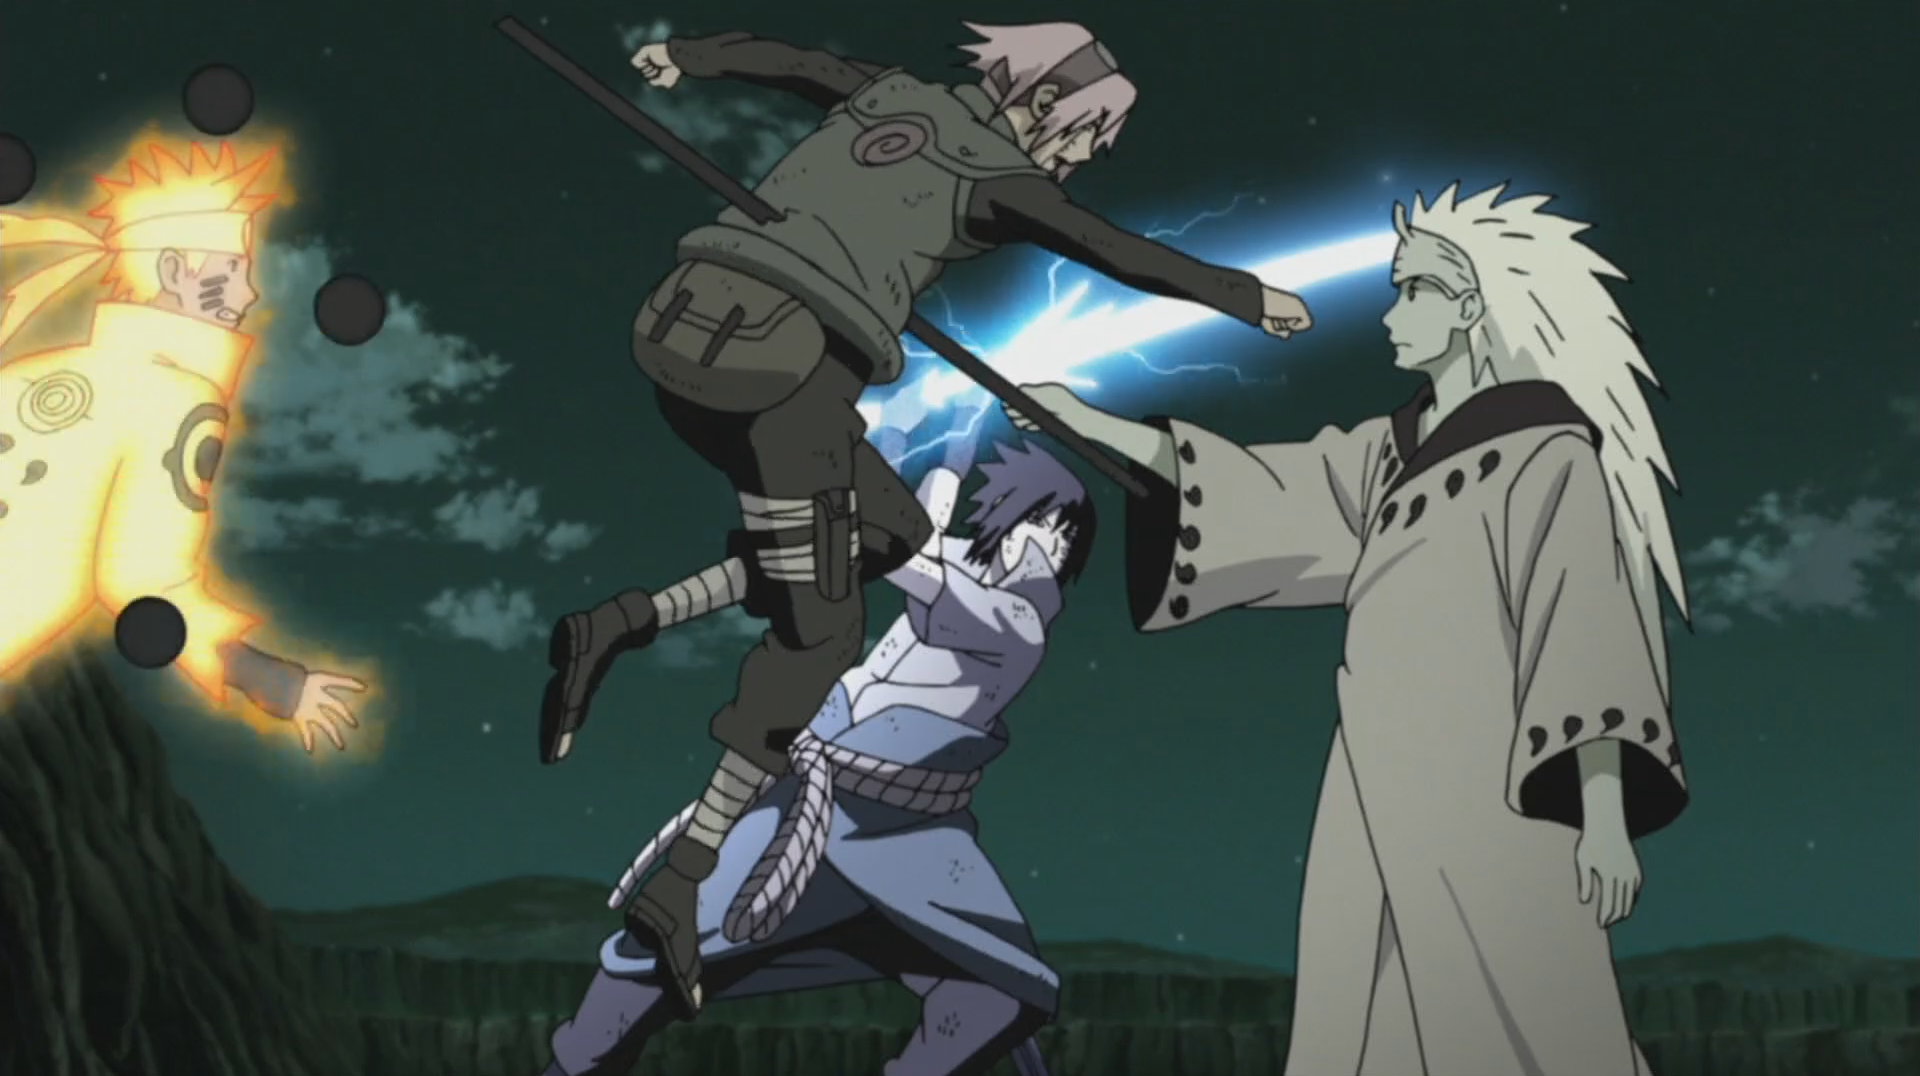 Image Team 7 Vs Madara Narutopedia Fandom Powered By Wikia Naruto Figure